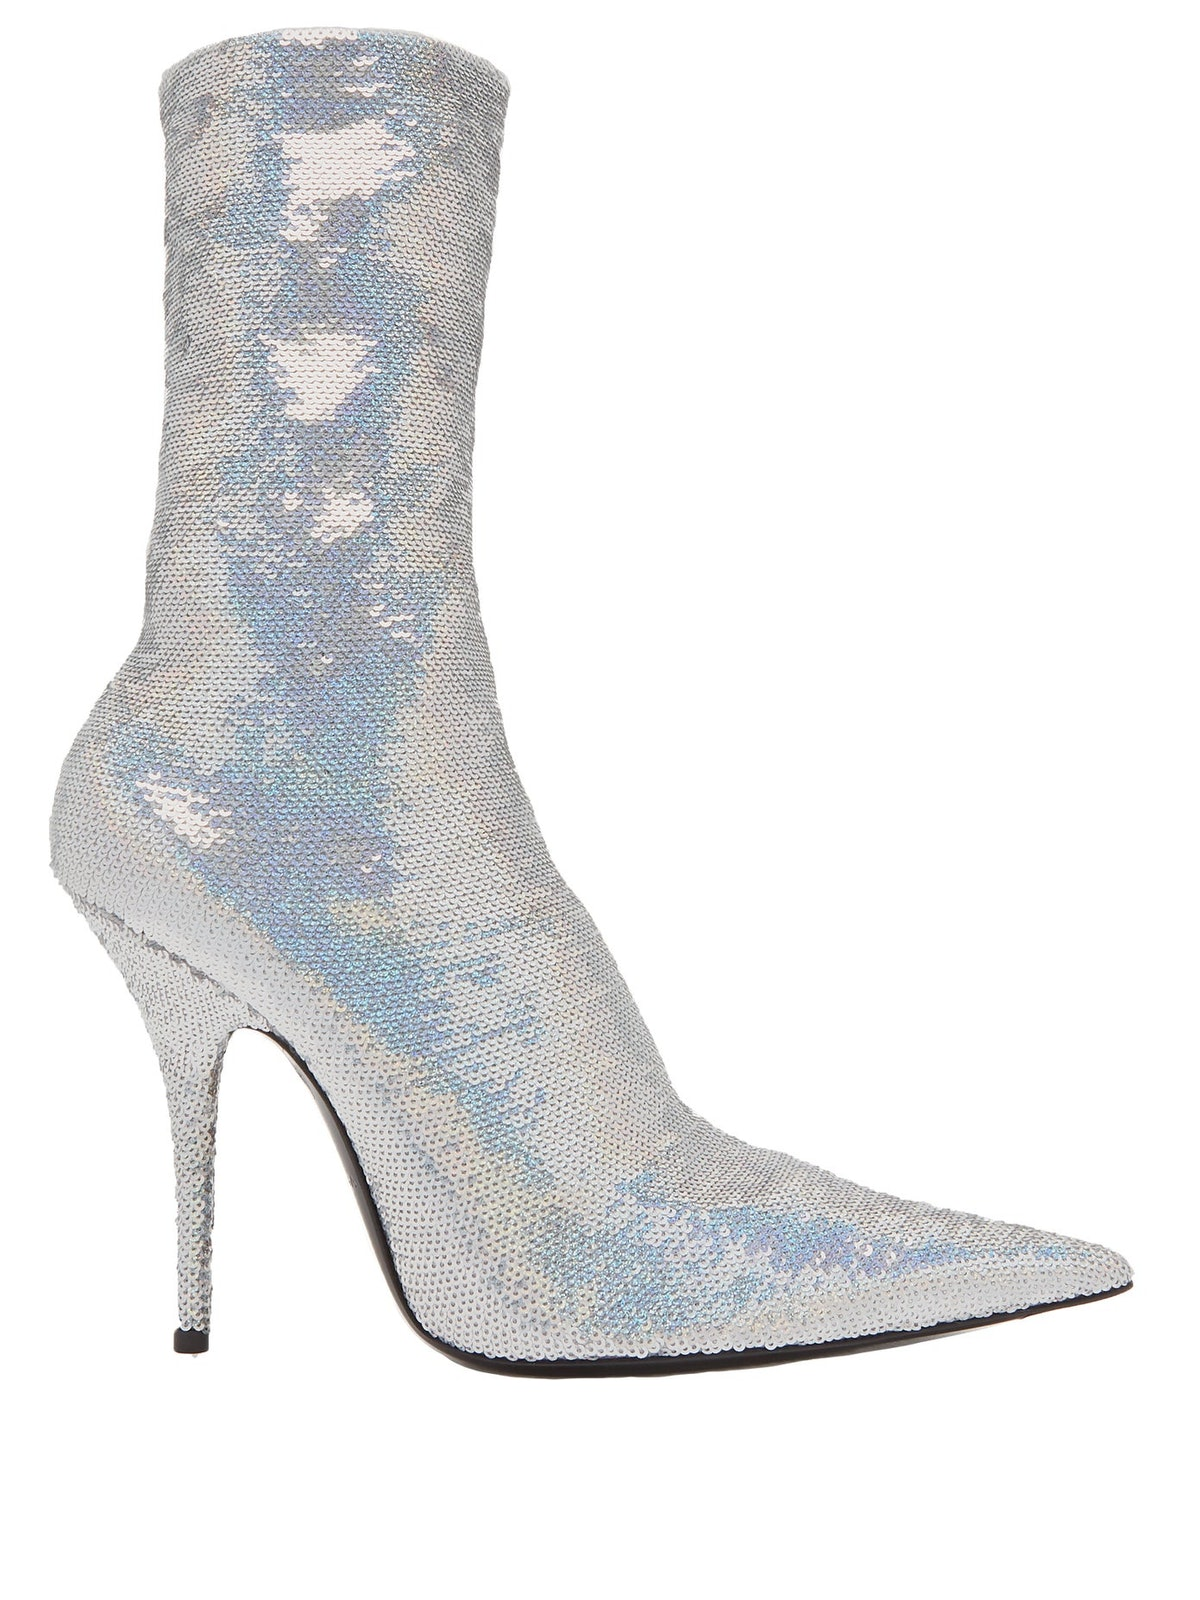 Iridescent Silver Sequin-Embroidered Knife Bootie